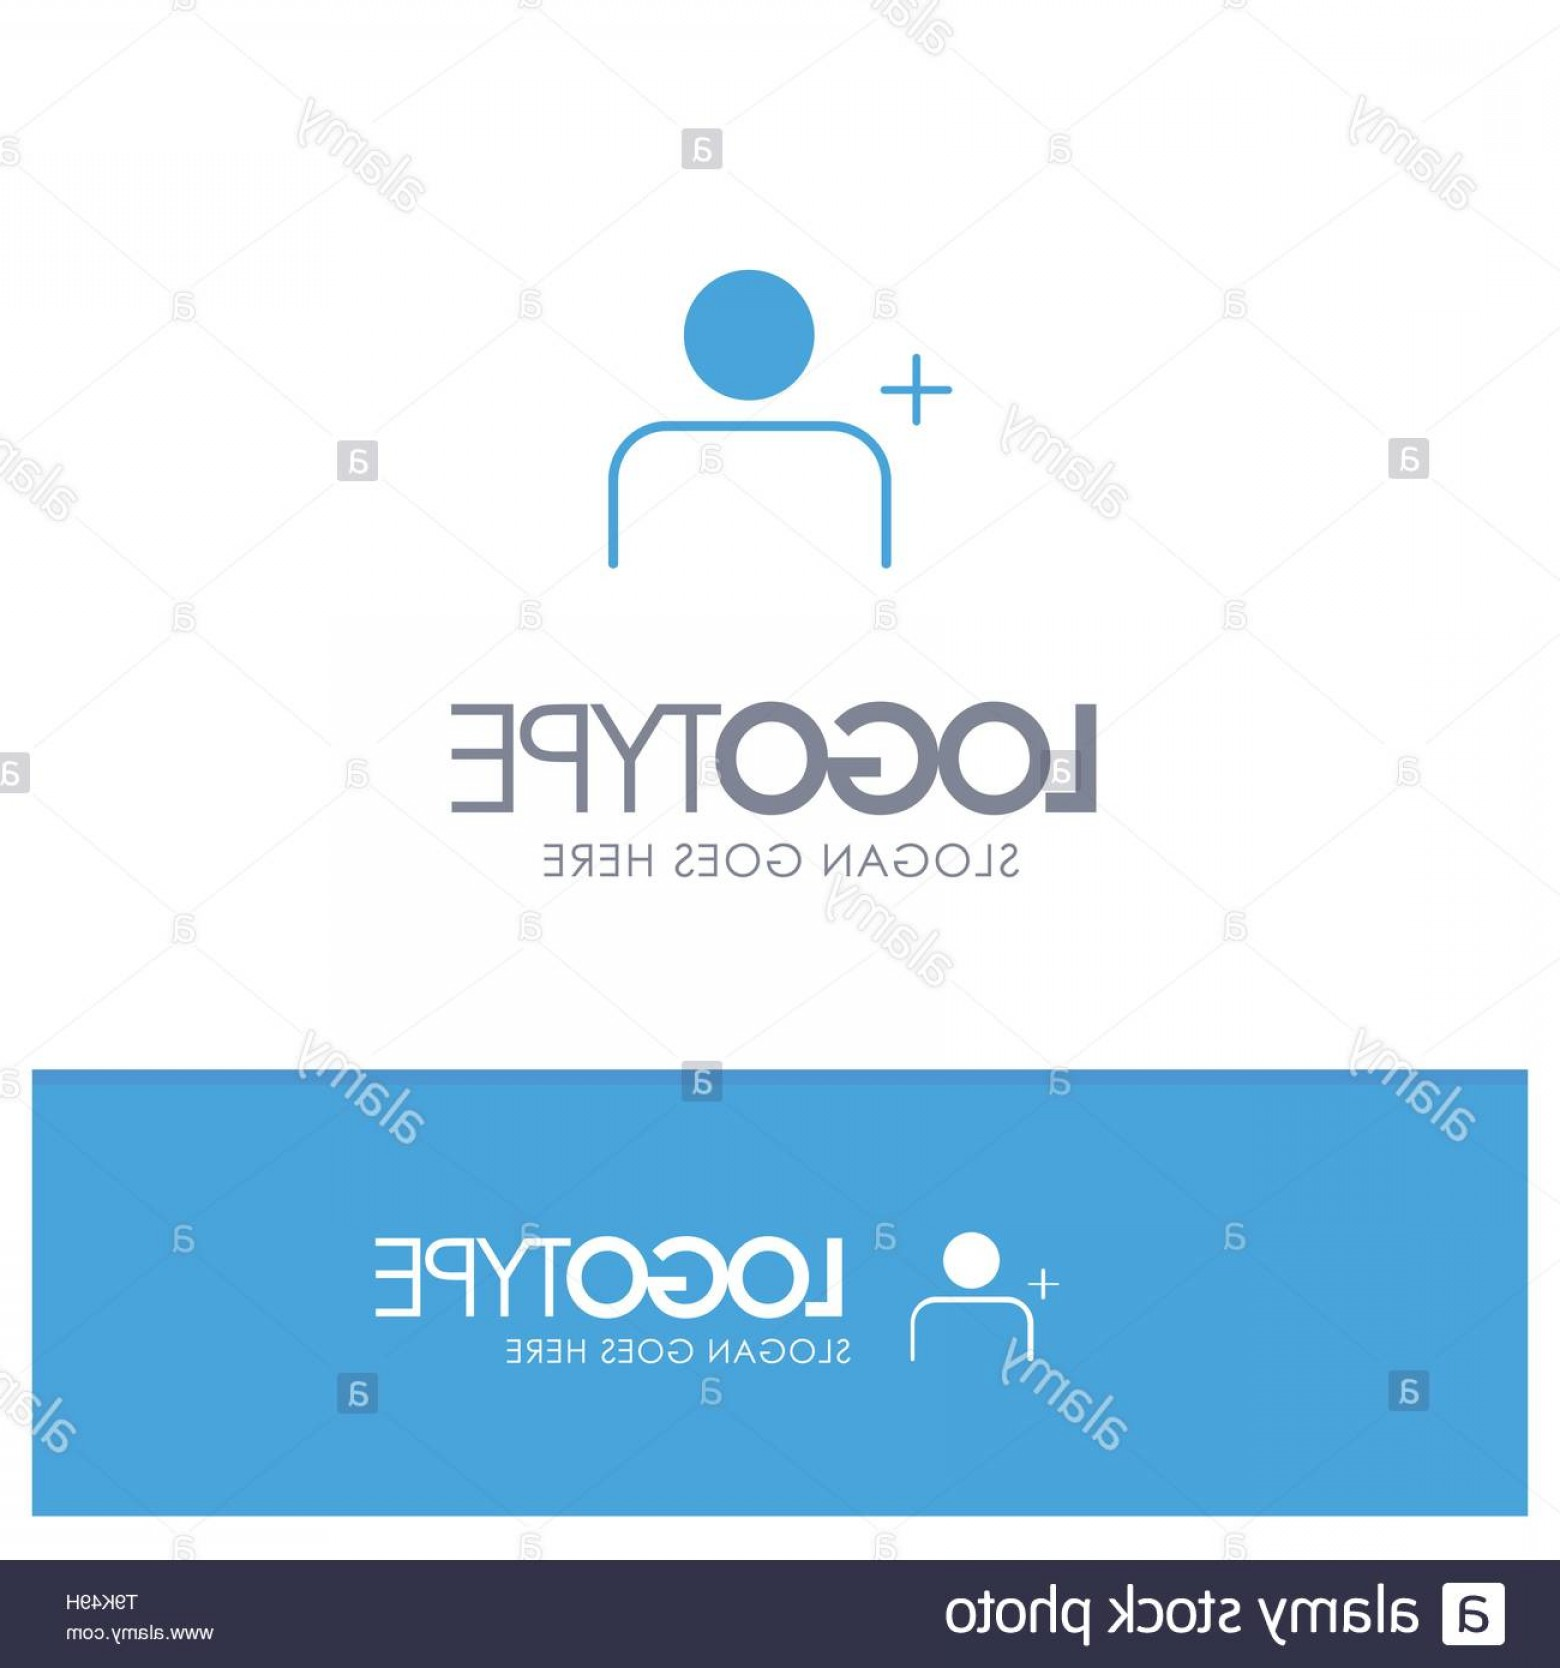 Discover Logo Vector: Discover People Instagram Sets Blue Solid Logo With Place For Tagline Image